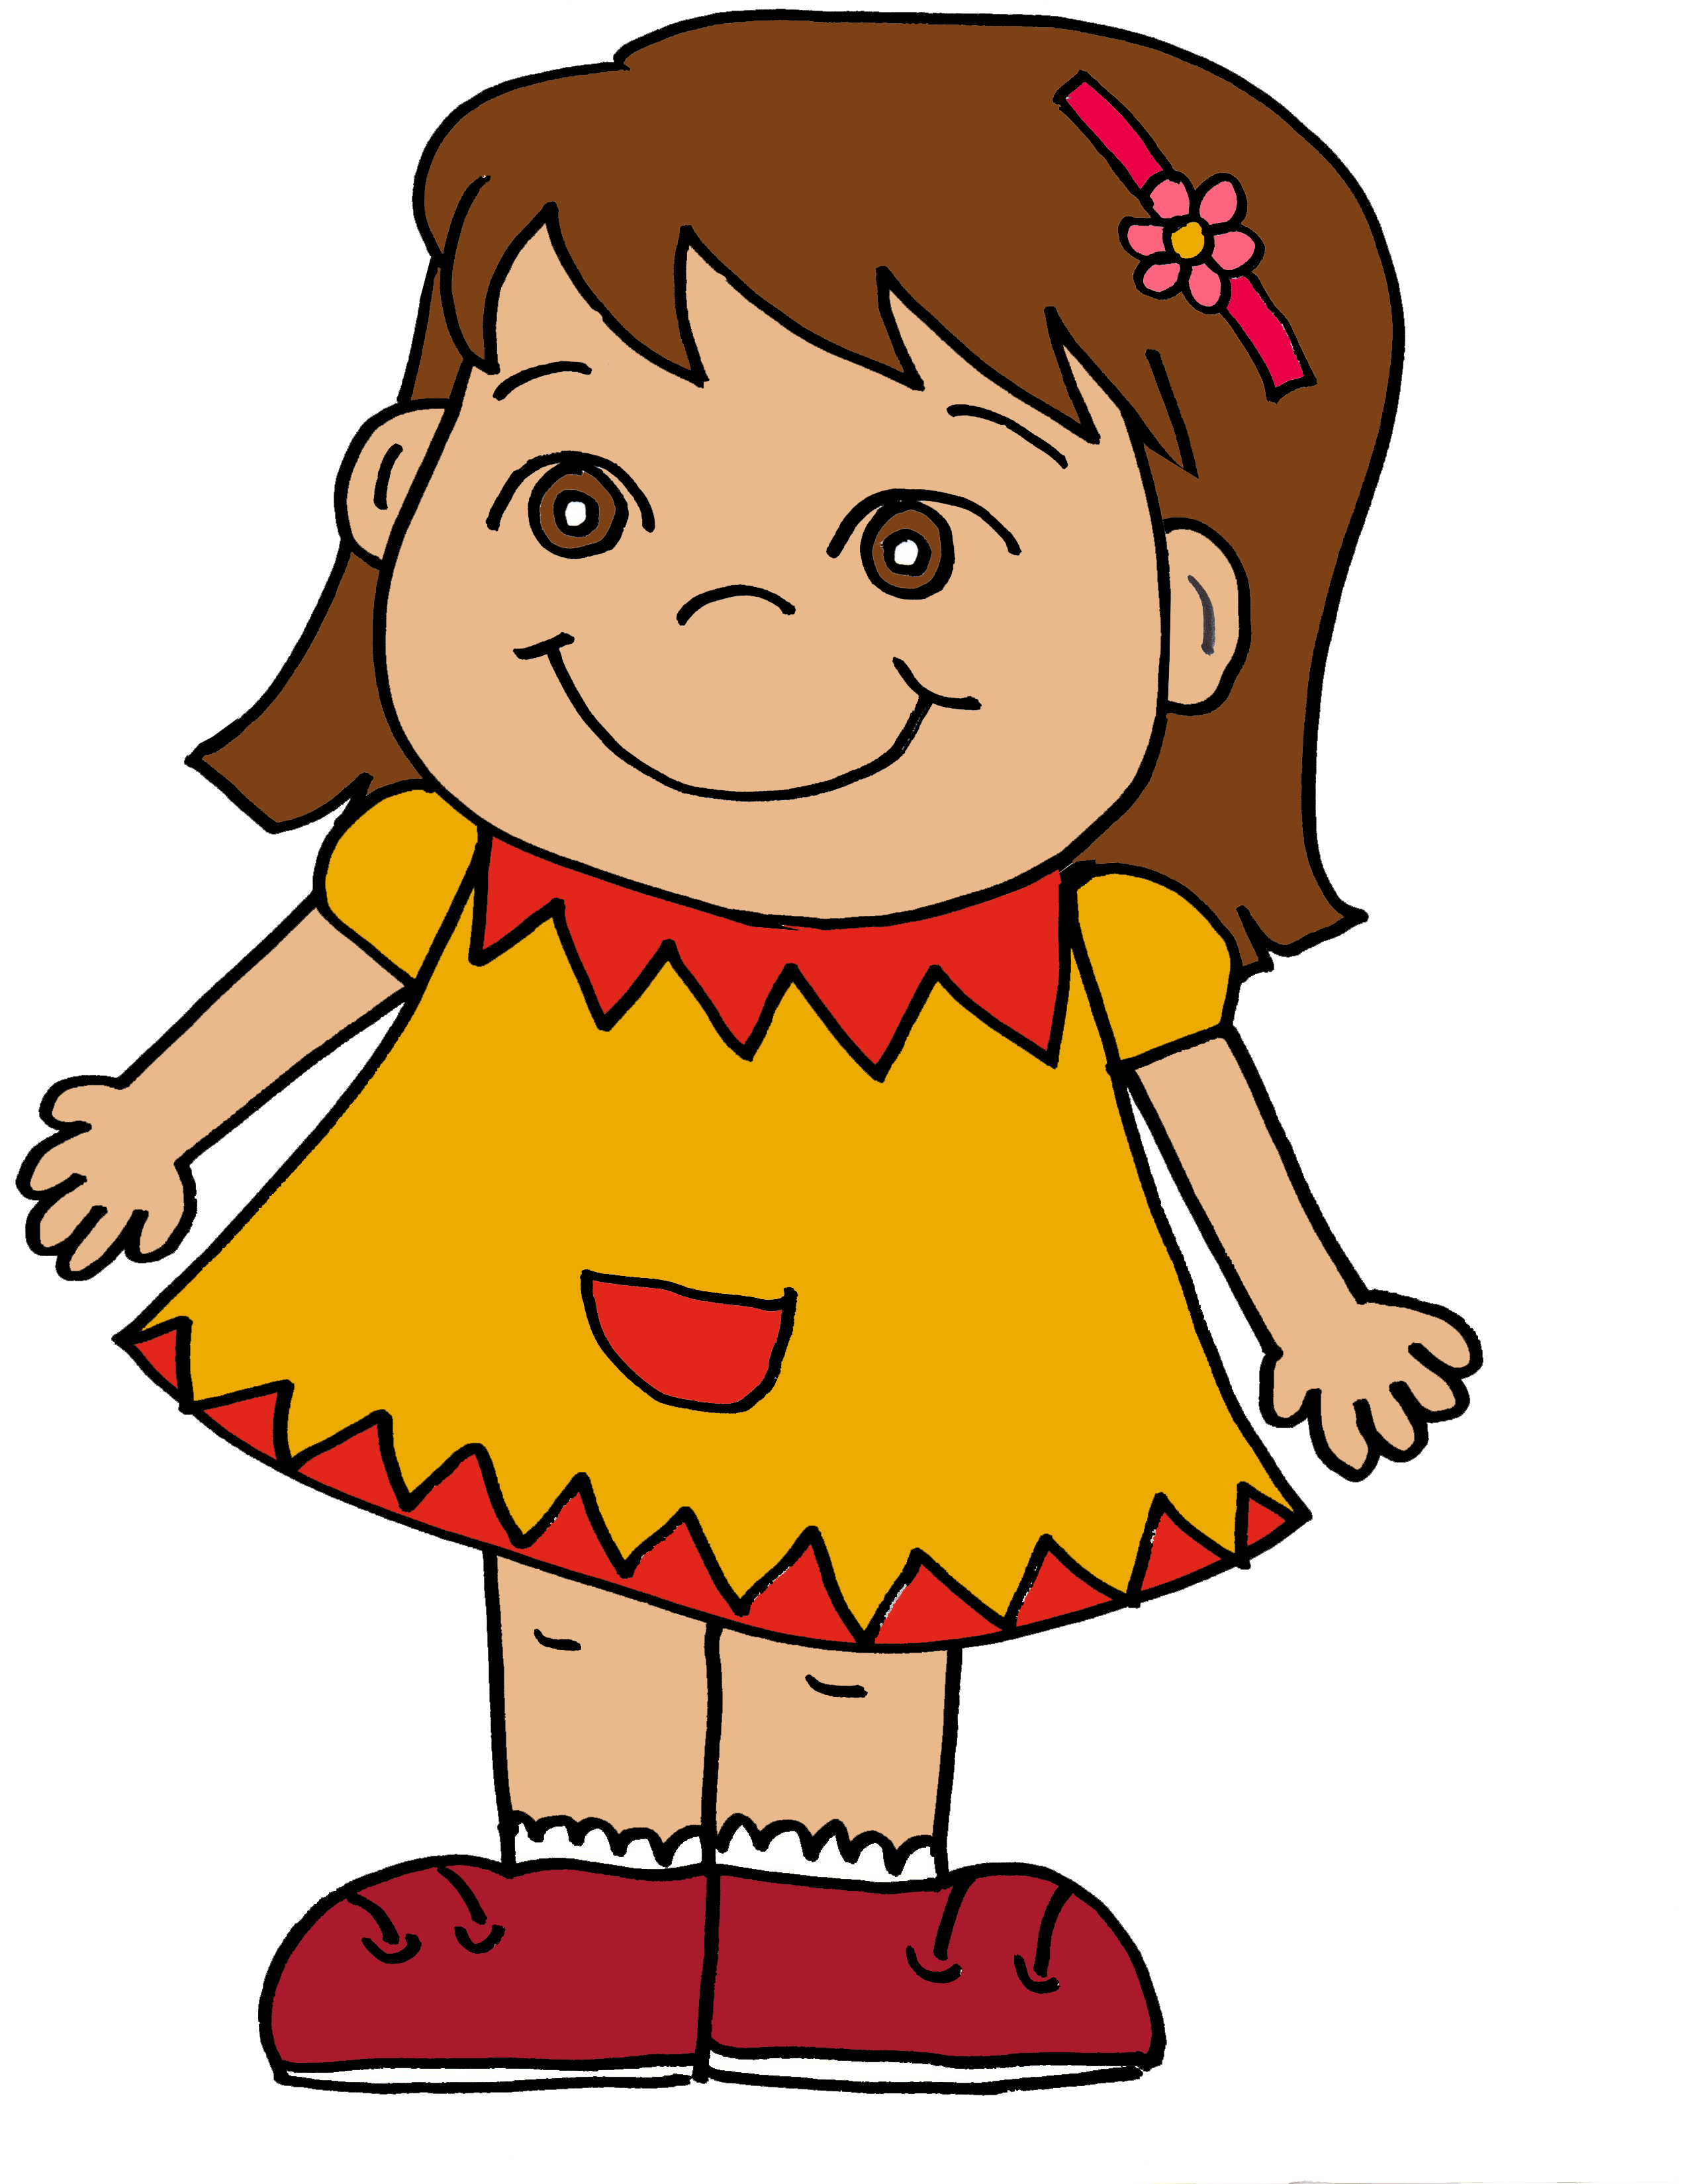 Clipart Of A Girl & Look At Of A Girl Clip Art Images - ClipartLook.com